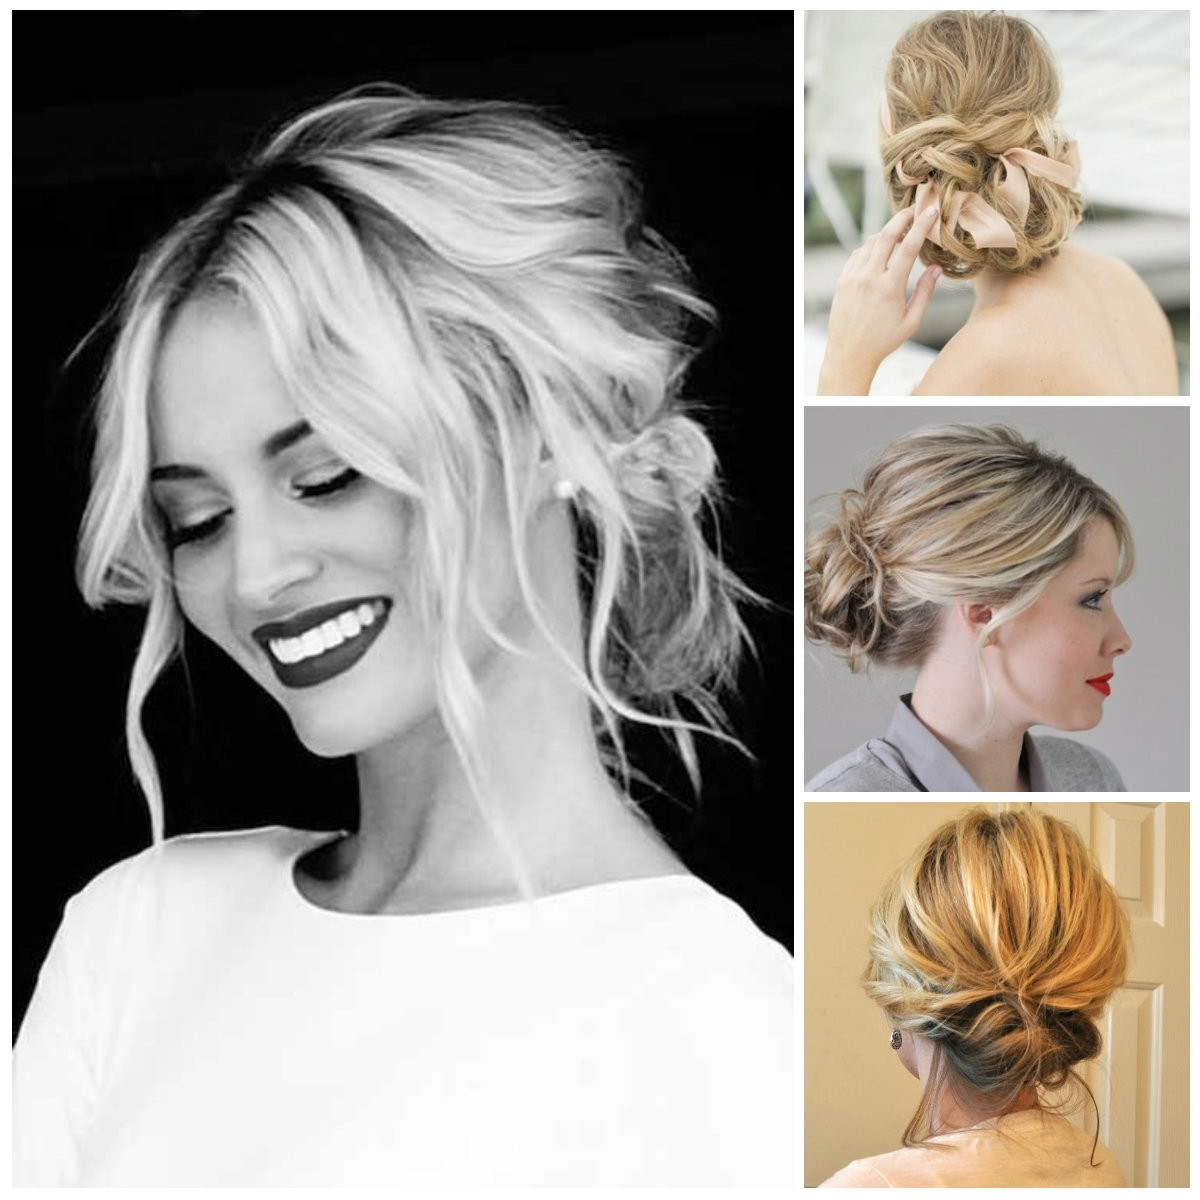 Newest Bridal Updo Hairstyles For Medium Length Hair Intended For Updo Hairstyles For Medium Length – Hairstyle For Women & Man (View 14 of 15)